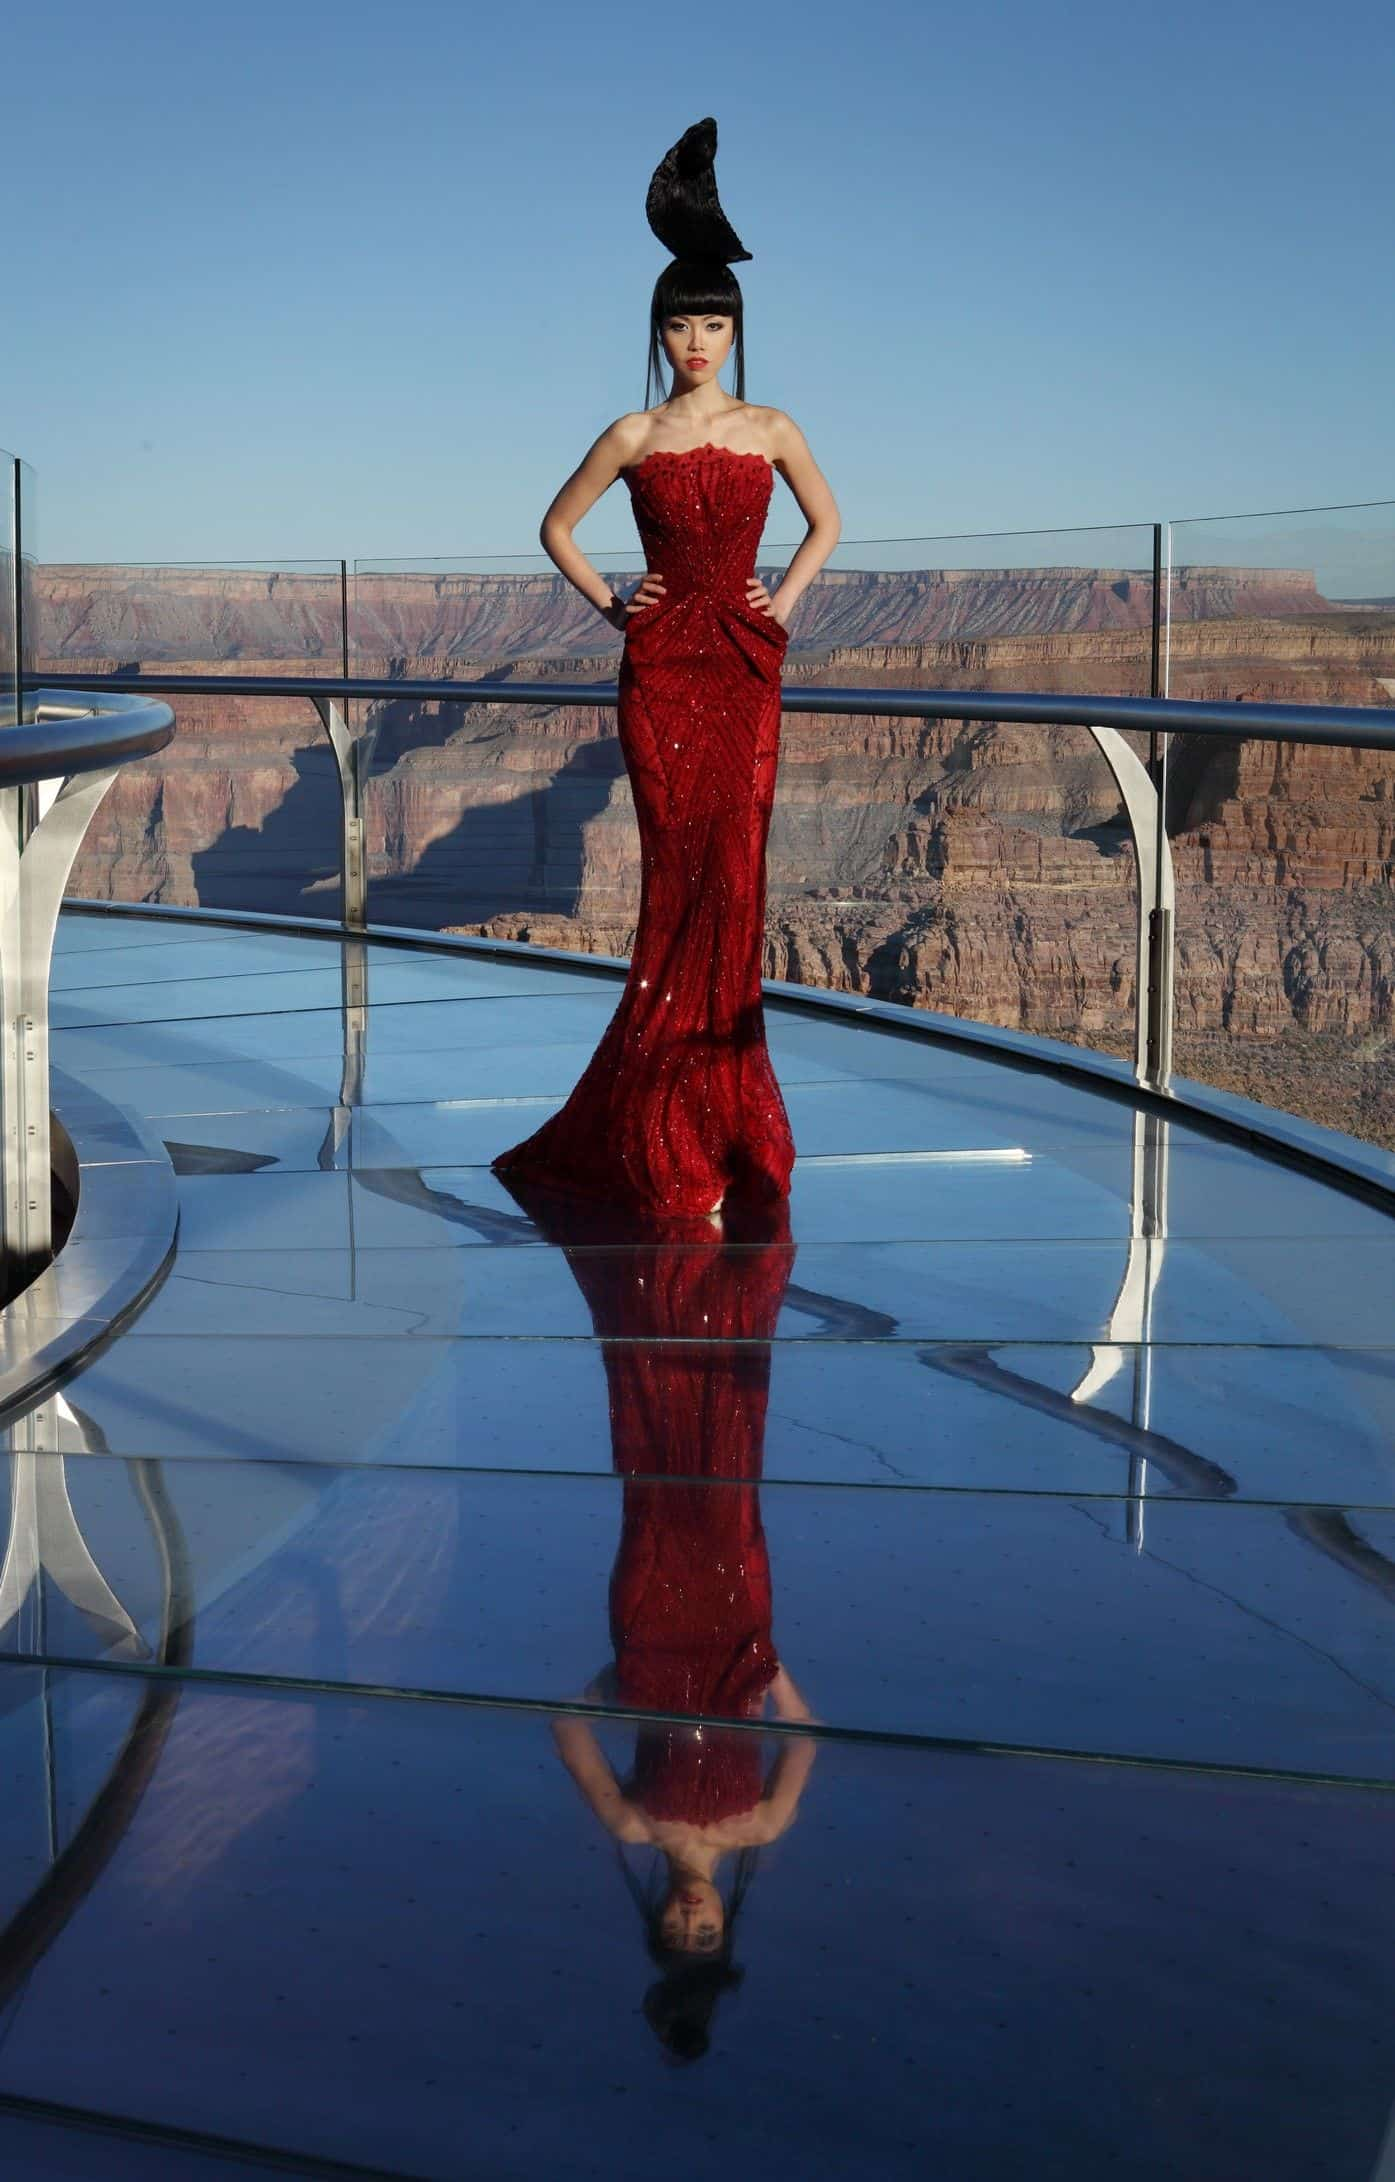 Jessica-Minh-Anh-Fashion-Shows-Fashion-and-Style-Magazine-J-Autumn-Fashion-Show-20Fashion Show at The Grand Canyon